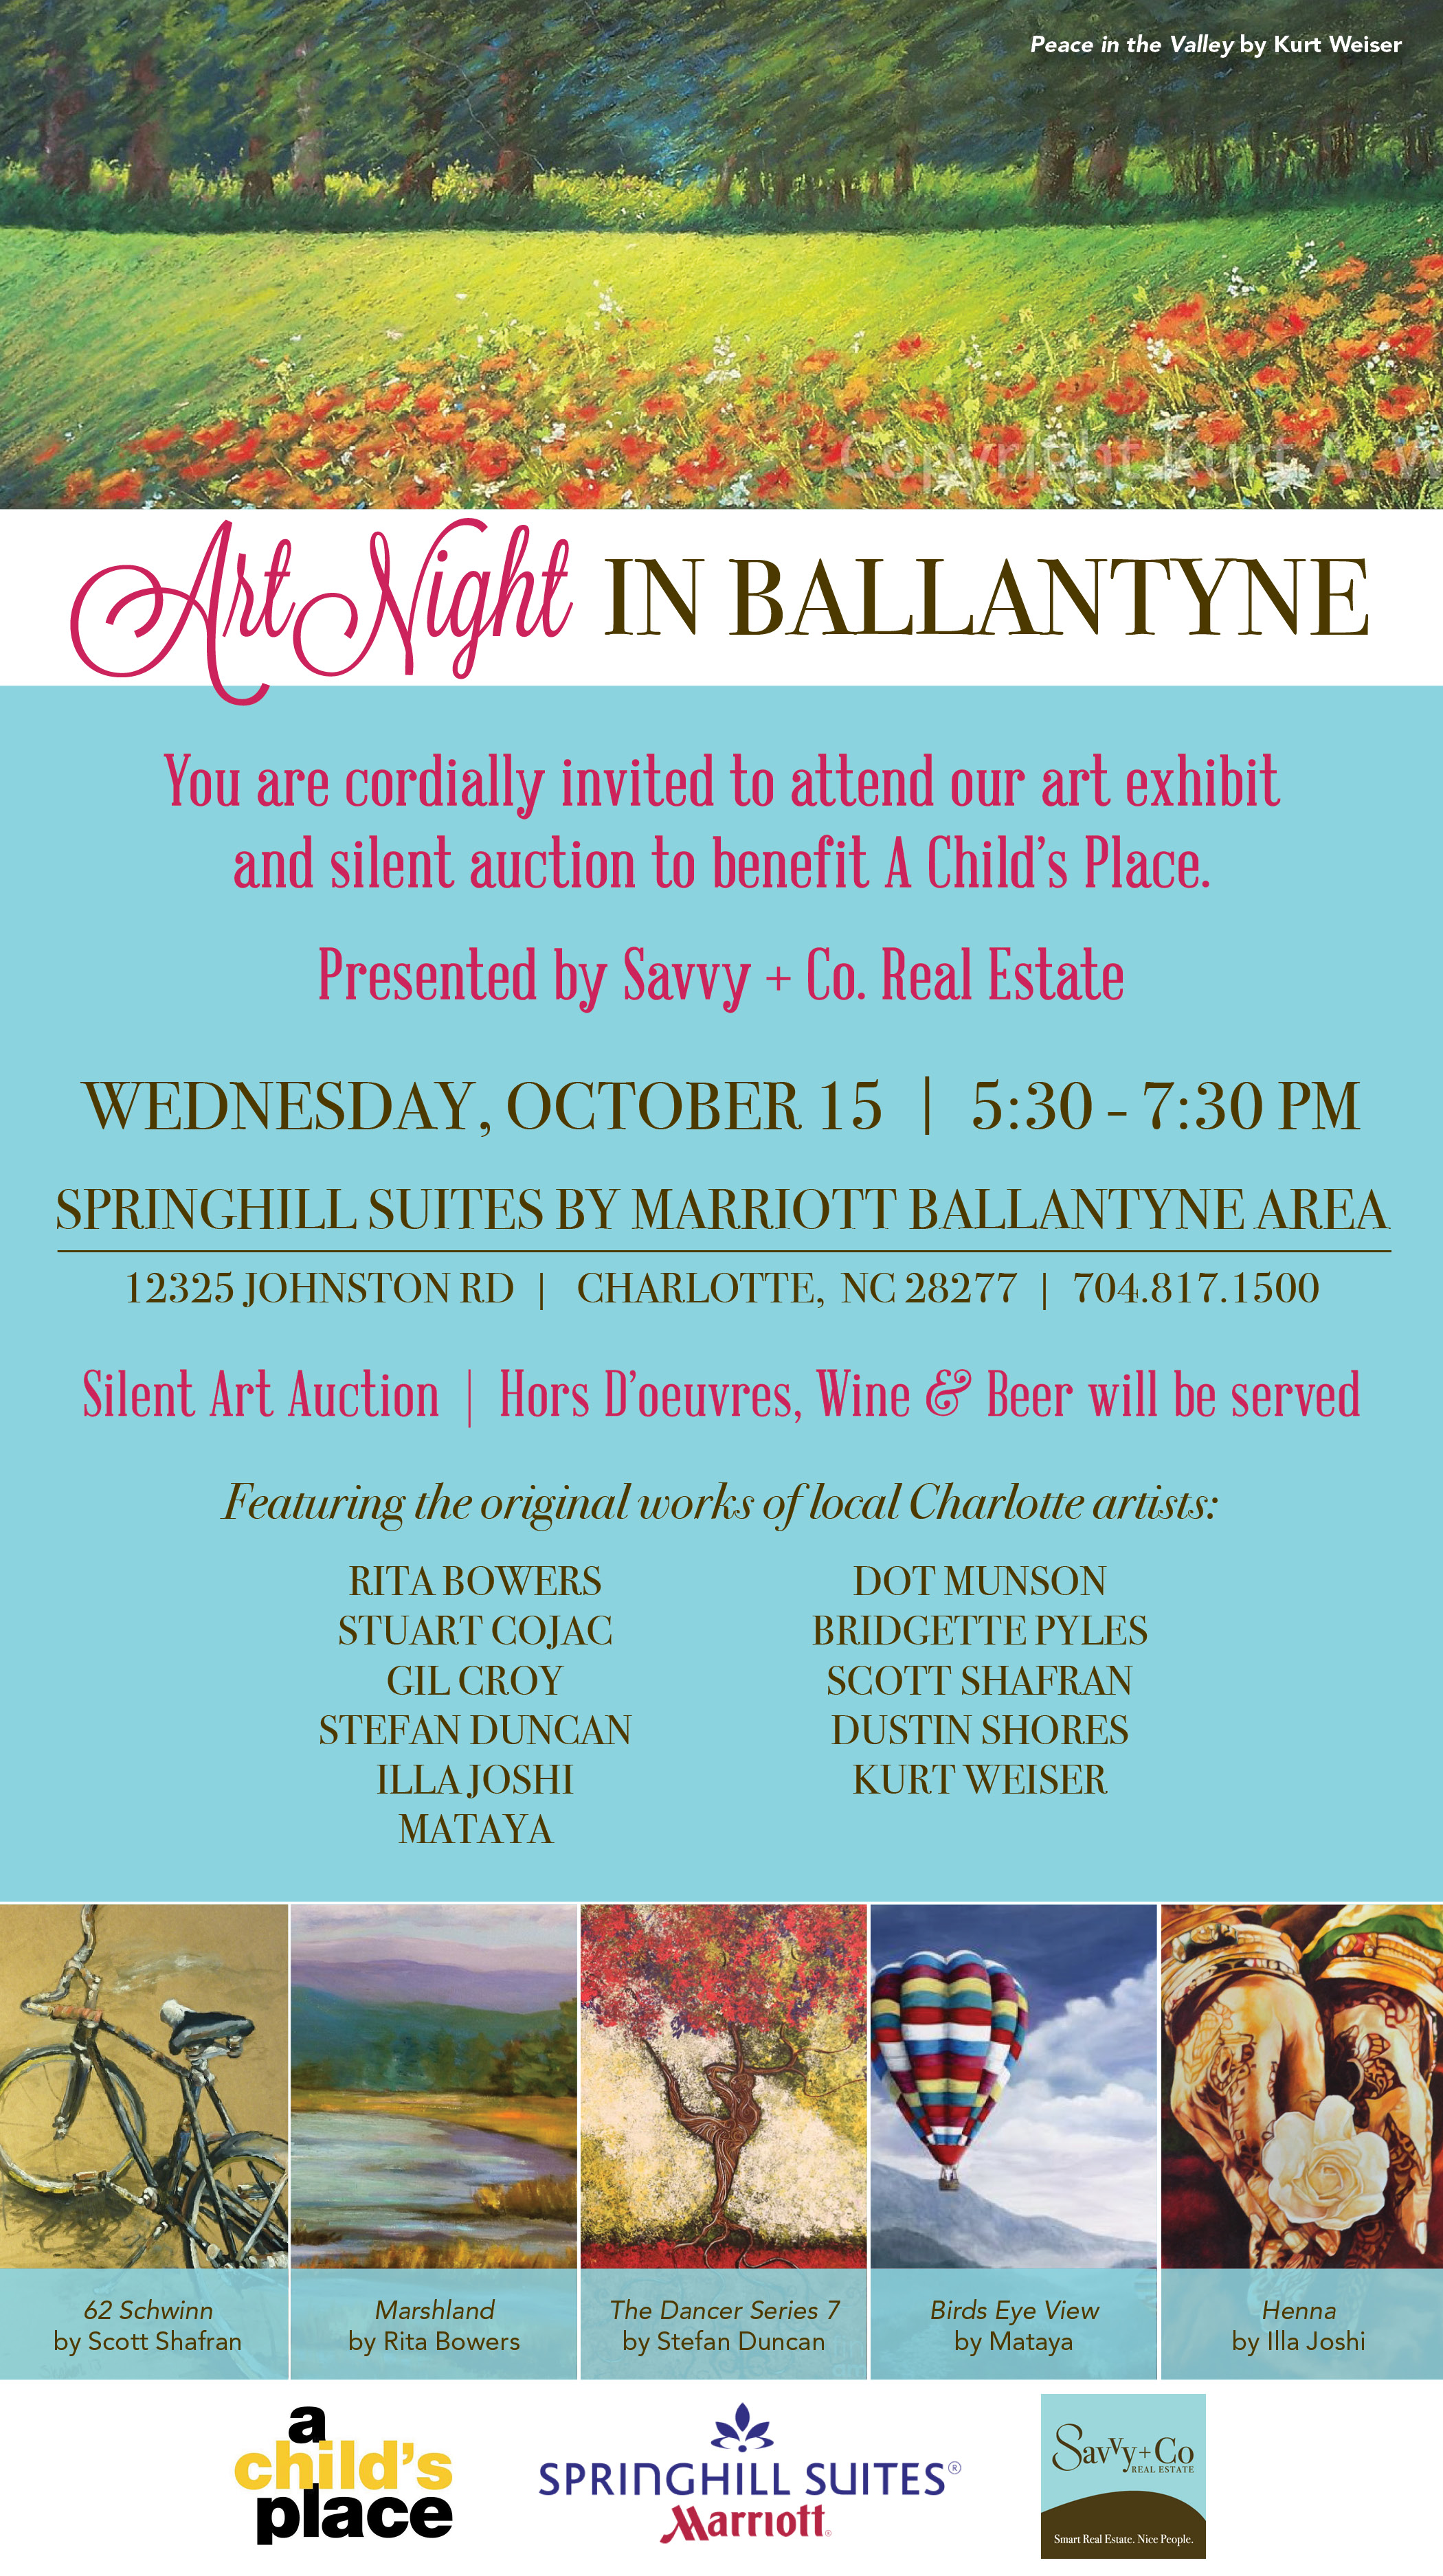 Ballantyne Charity Event - Art Night Benefitting A Child's Place